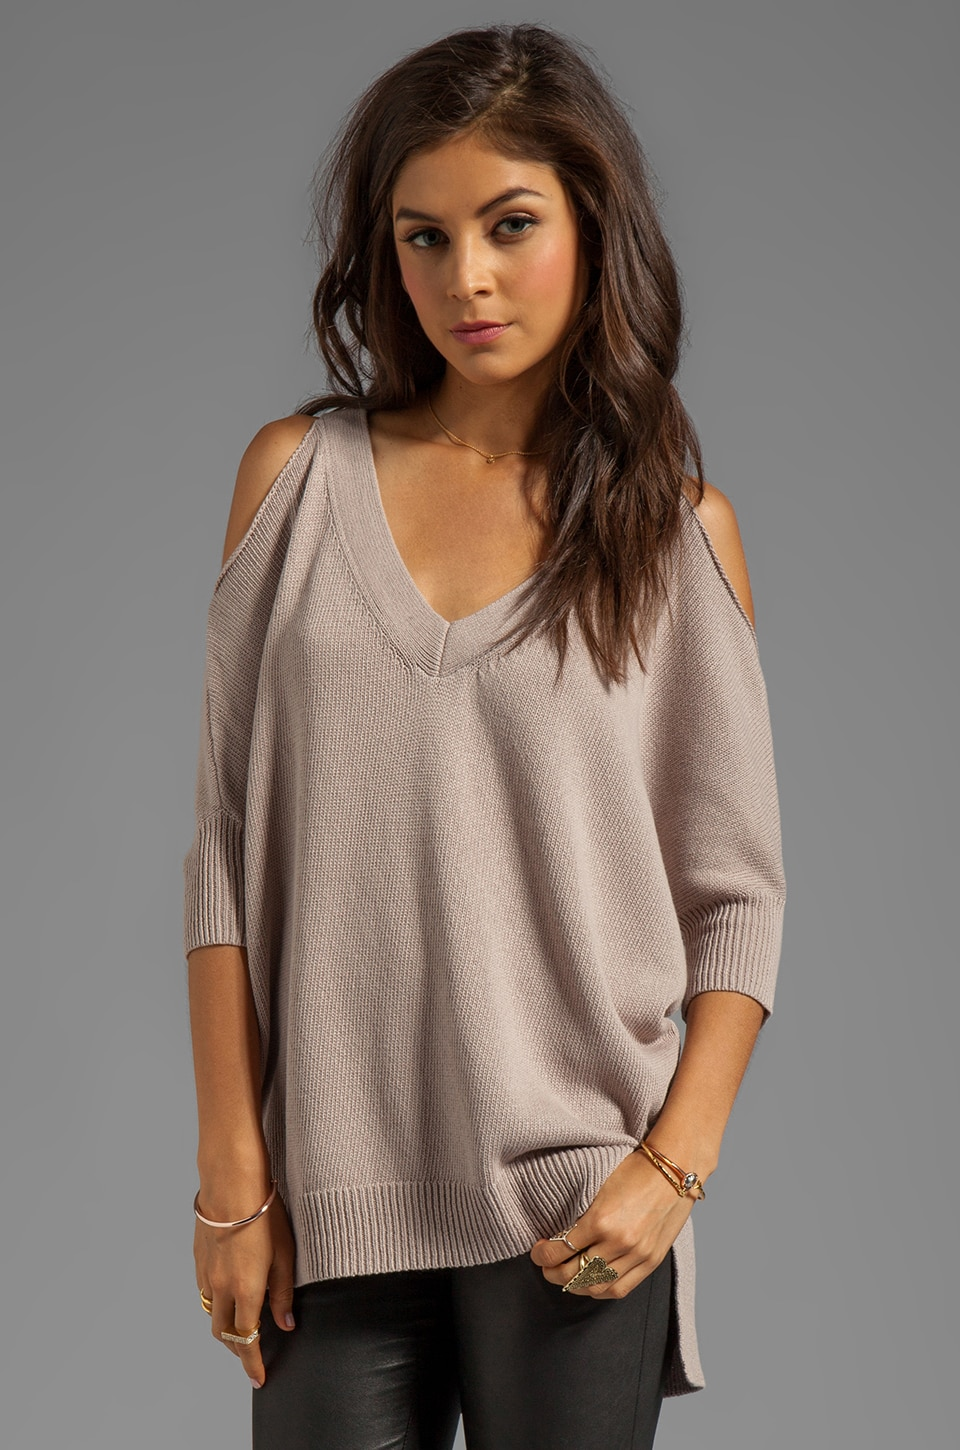 Trina Turk Madison Sweater in Sandstone